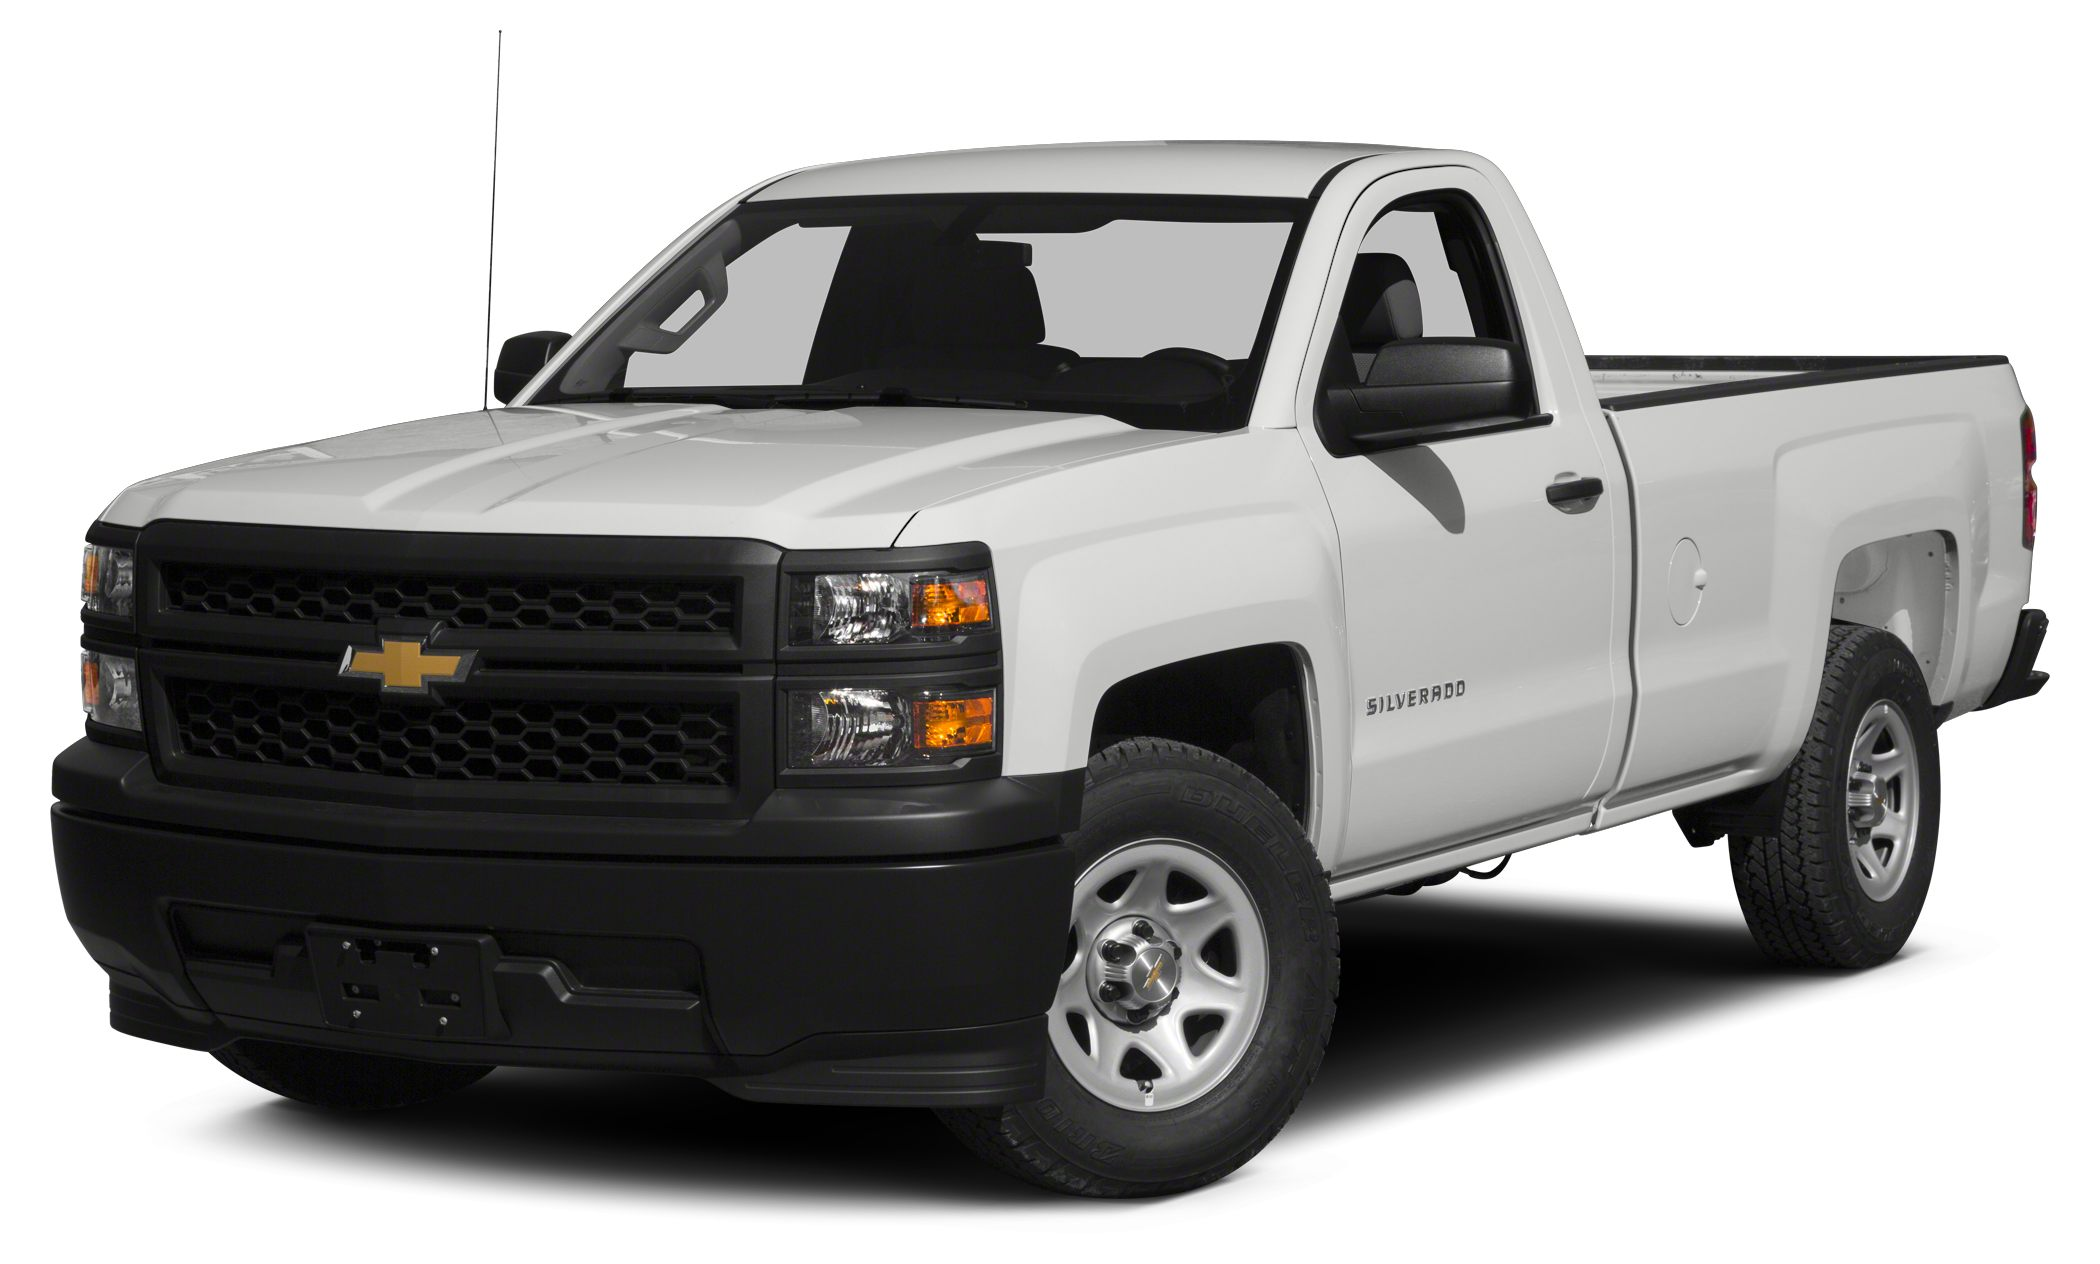 2015 Chevrolet Silverado 1500  Miles 152Color Summit White Stock 158442 VIN 1GCNCPEH1FZ41616